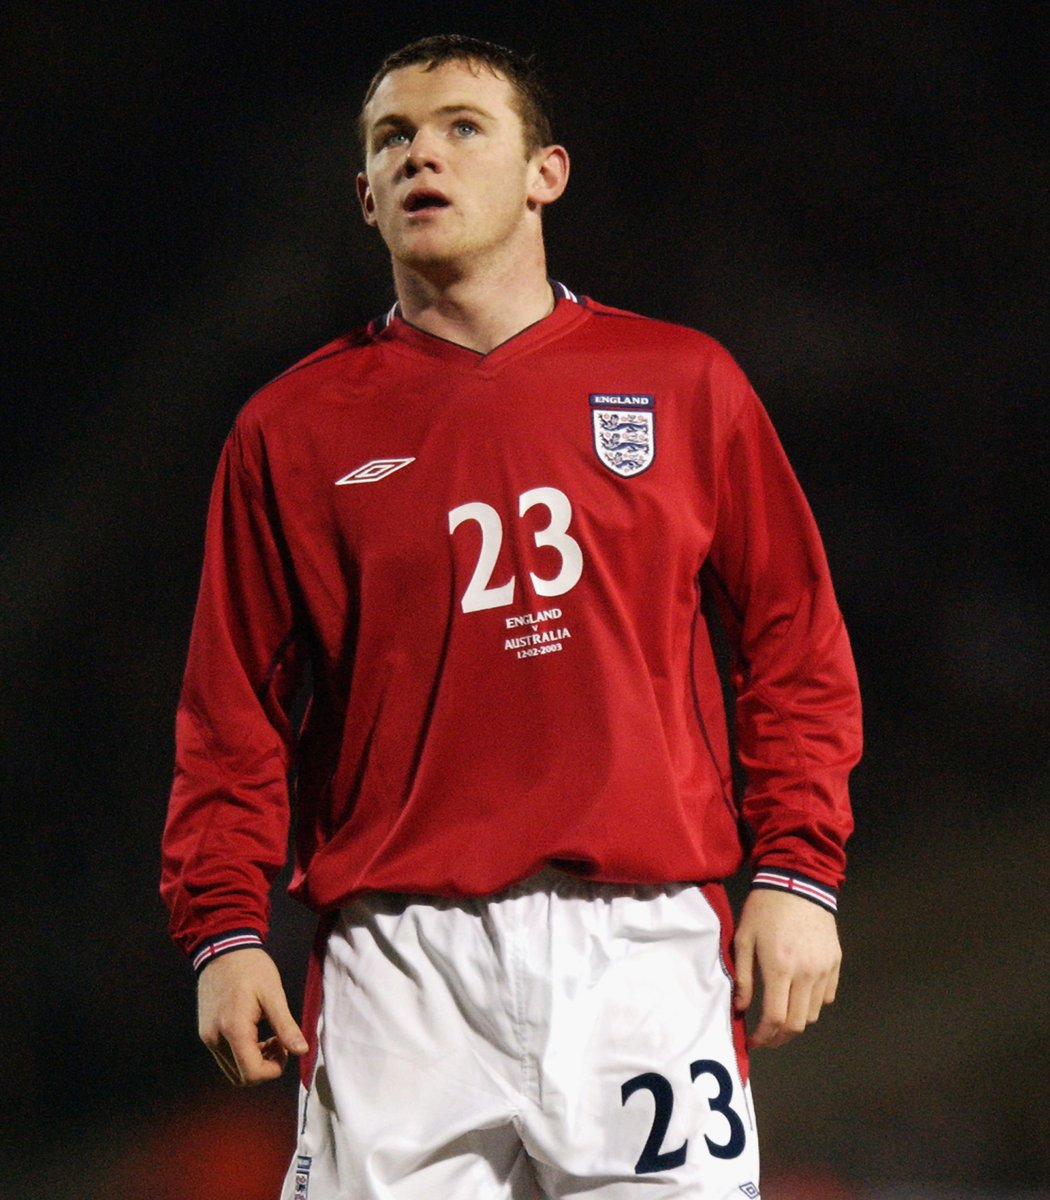 The start of a very special #ThreeLions career 🌟  #OnThisDay in 2003, @WayneRooney became our youngest-ever player as he won the first of his 120 caps!